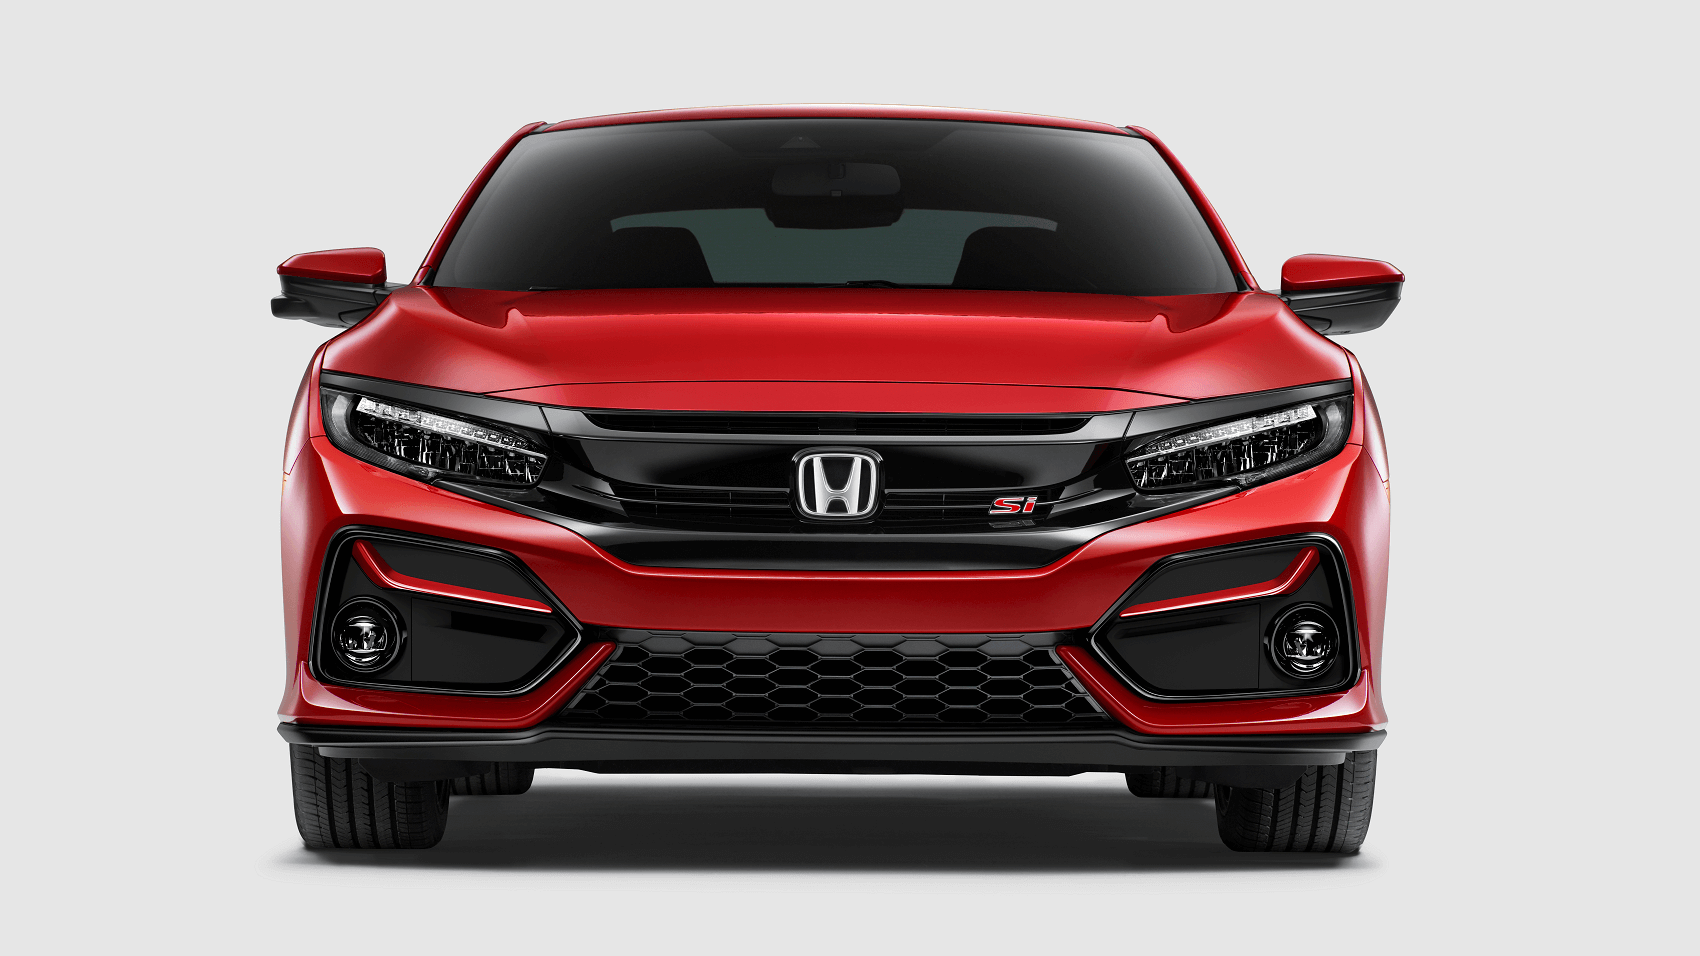 2020 Honda Civic Engine Specs